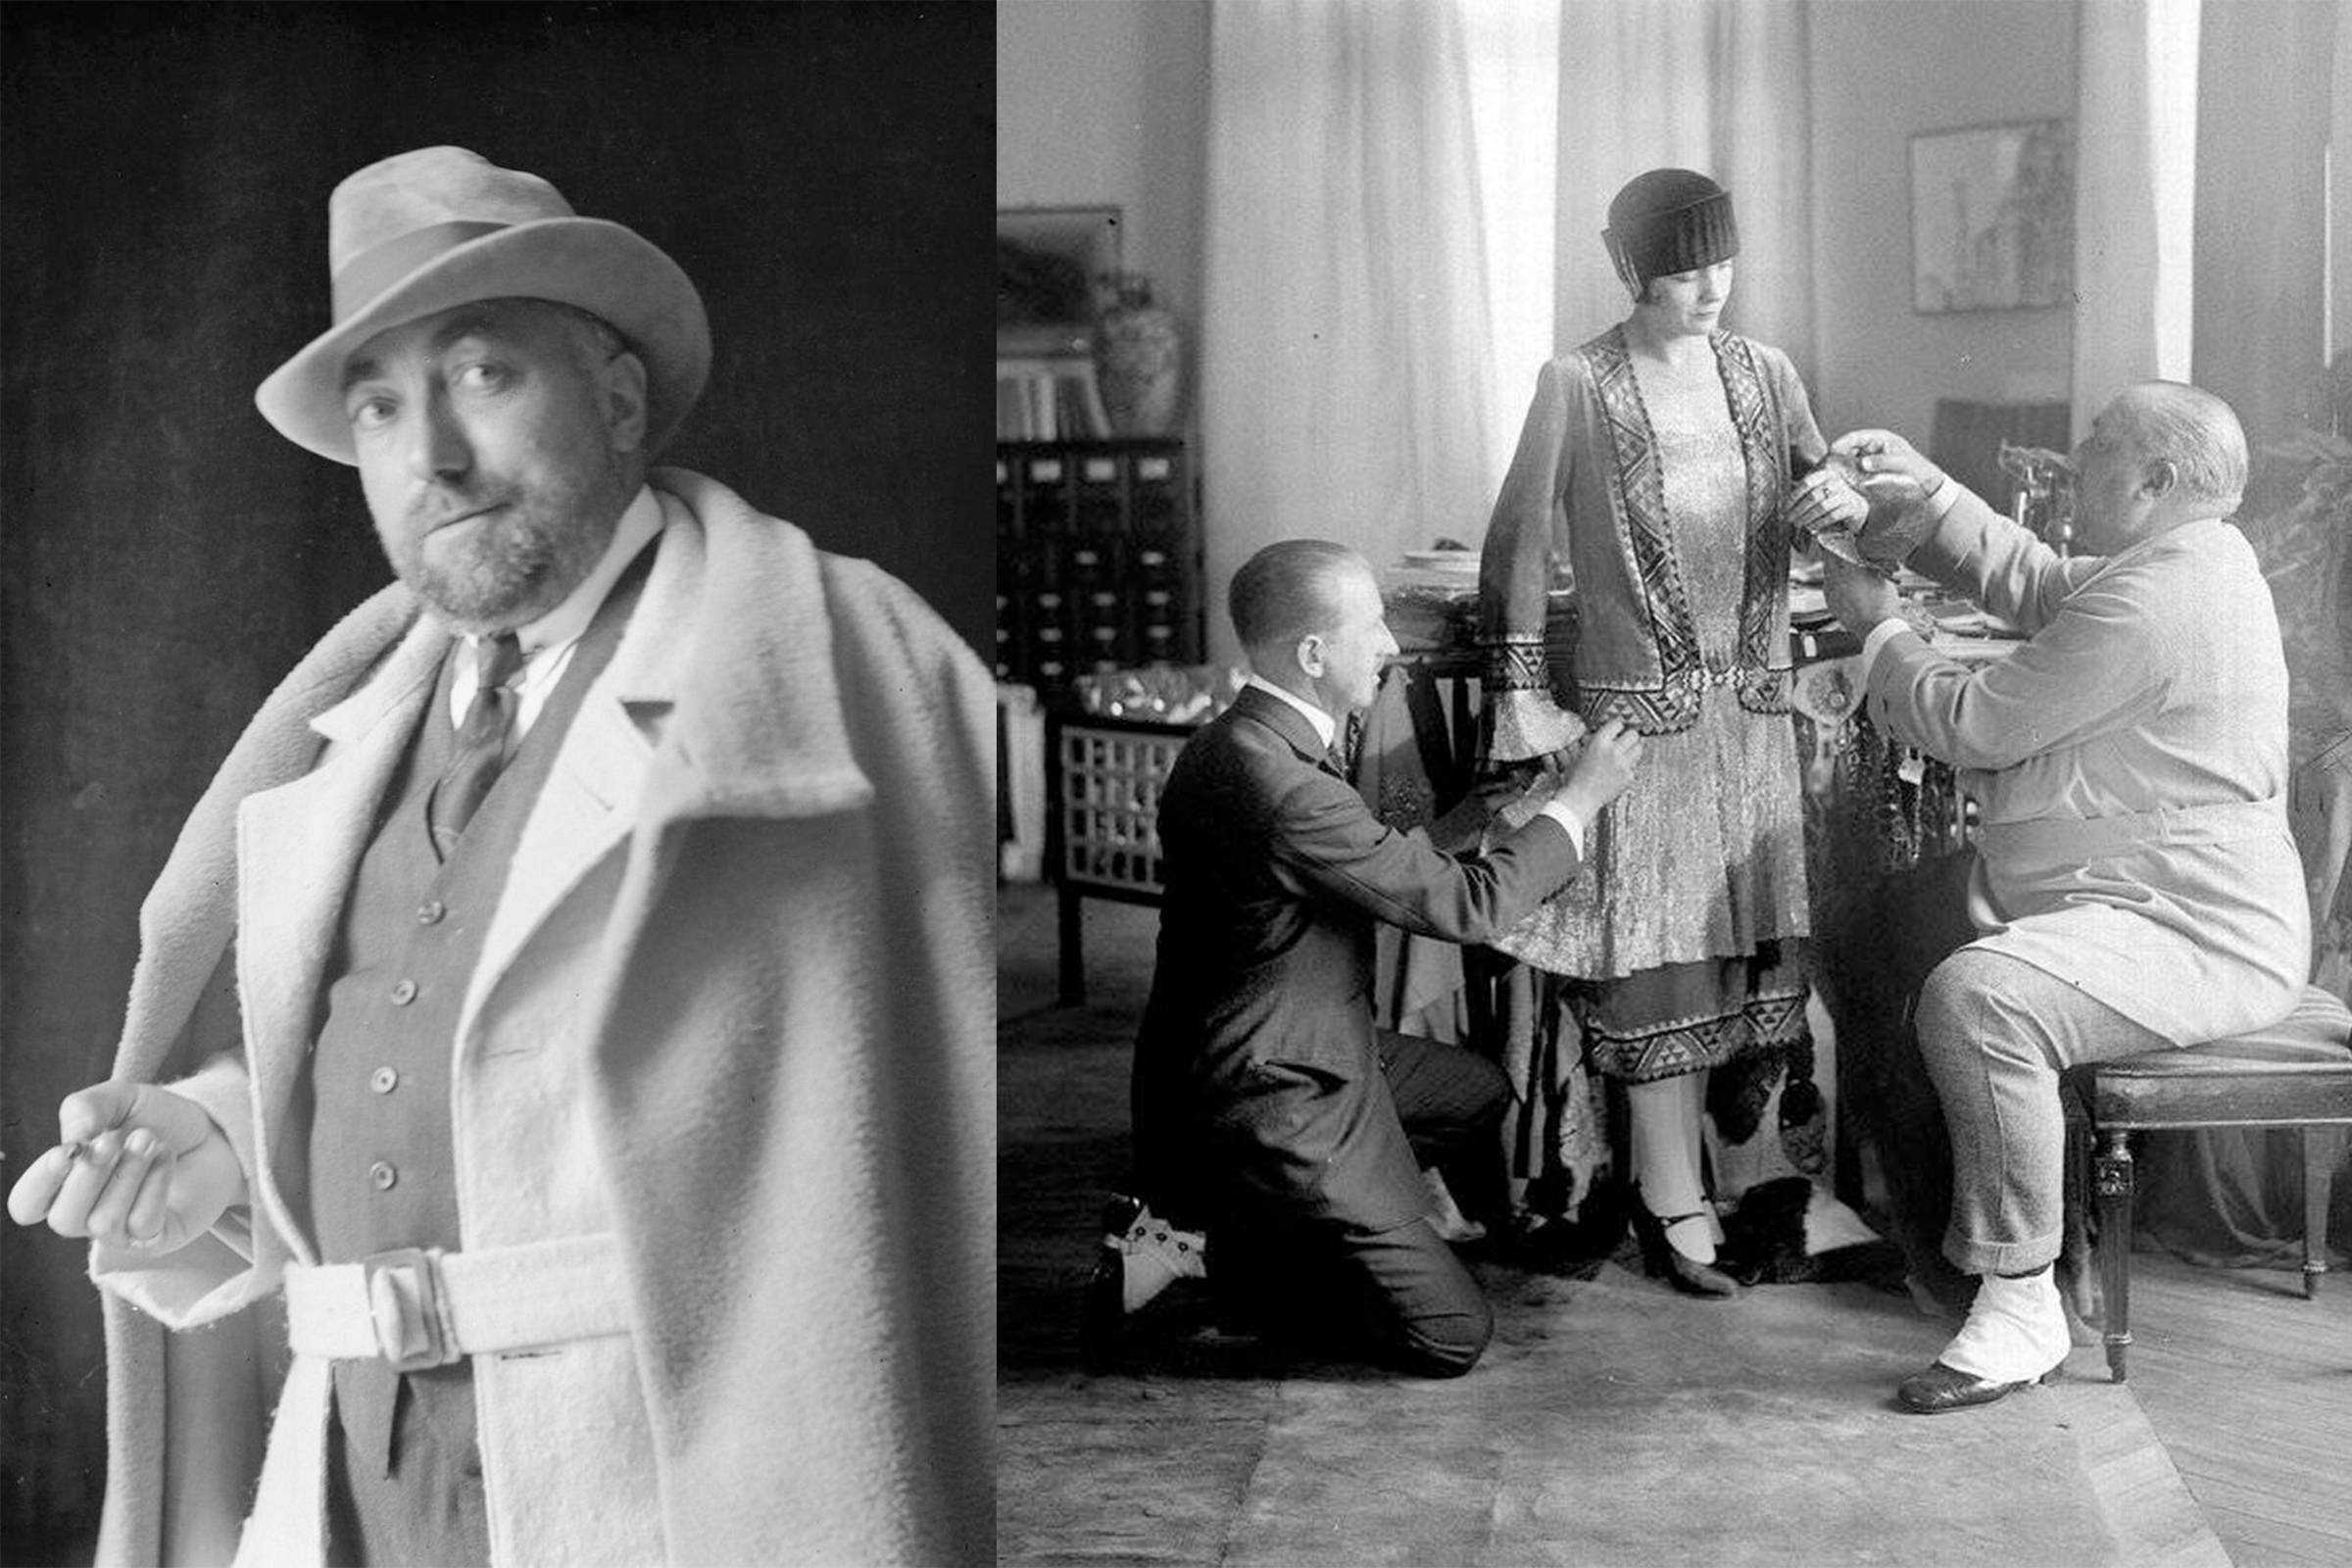 Heroine: The Rise, Fall and Rebirth of the House of Poiret